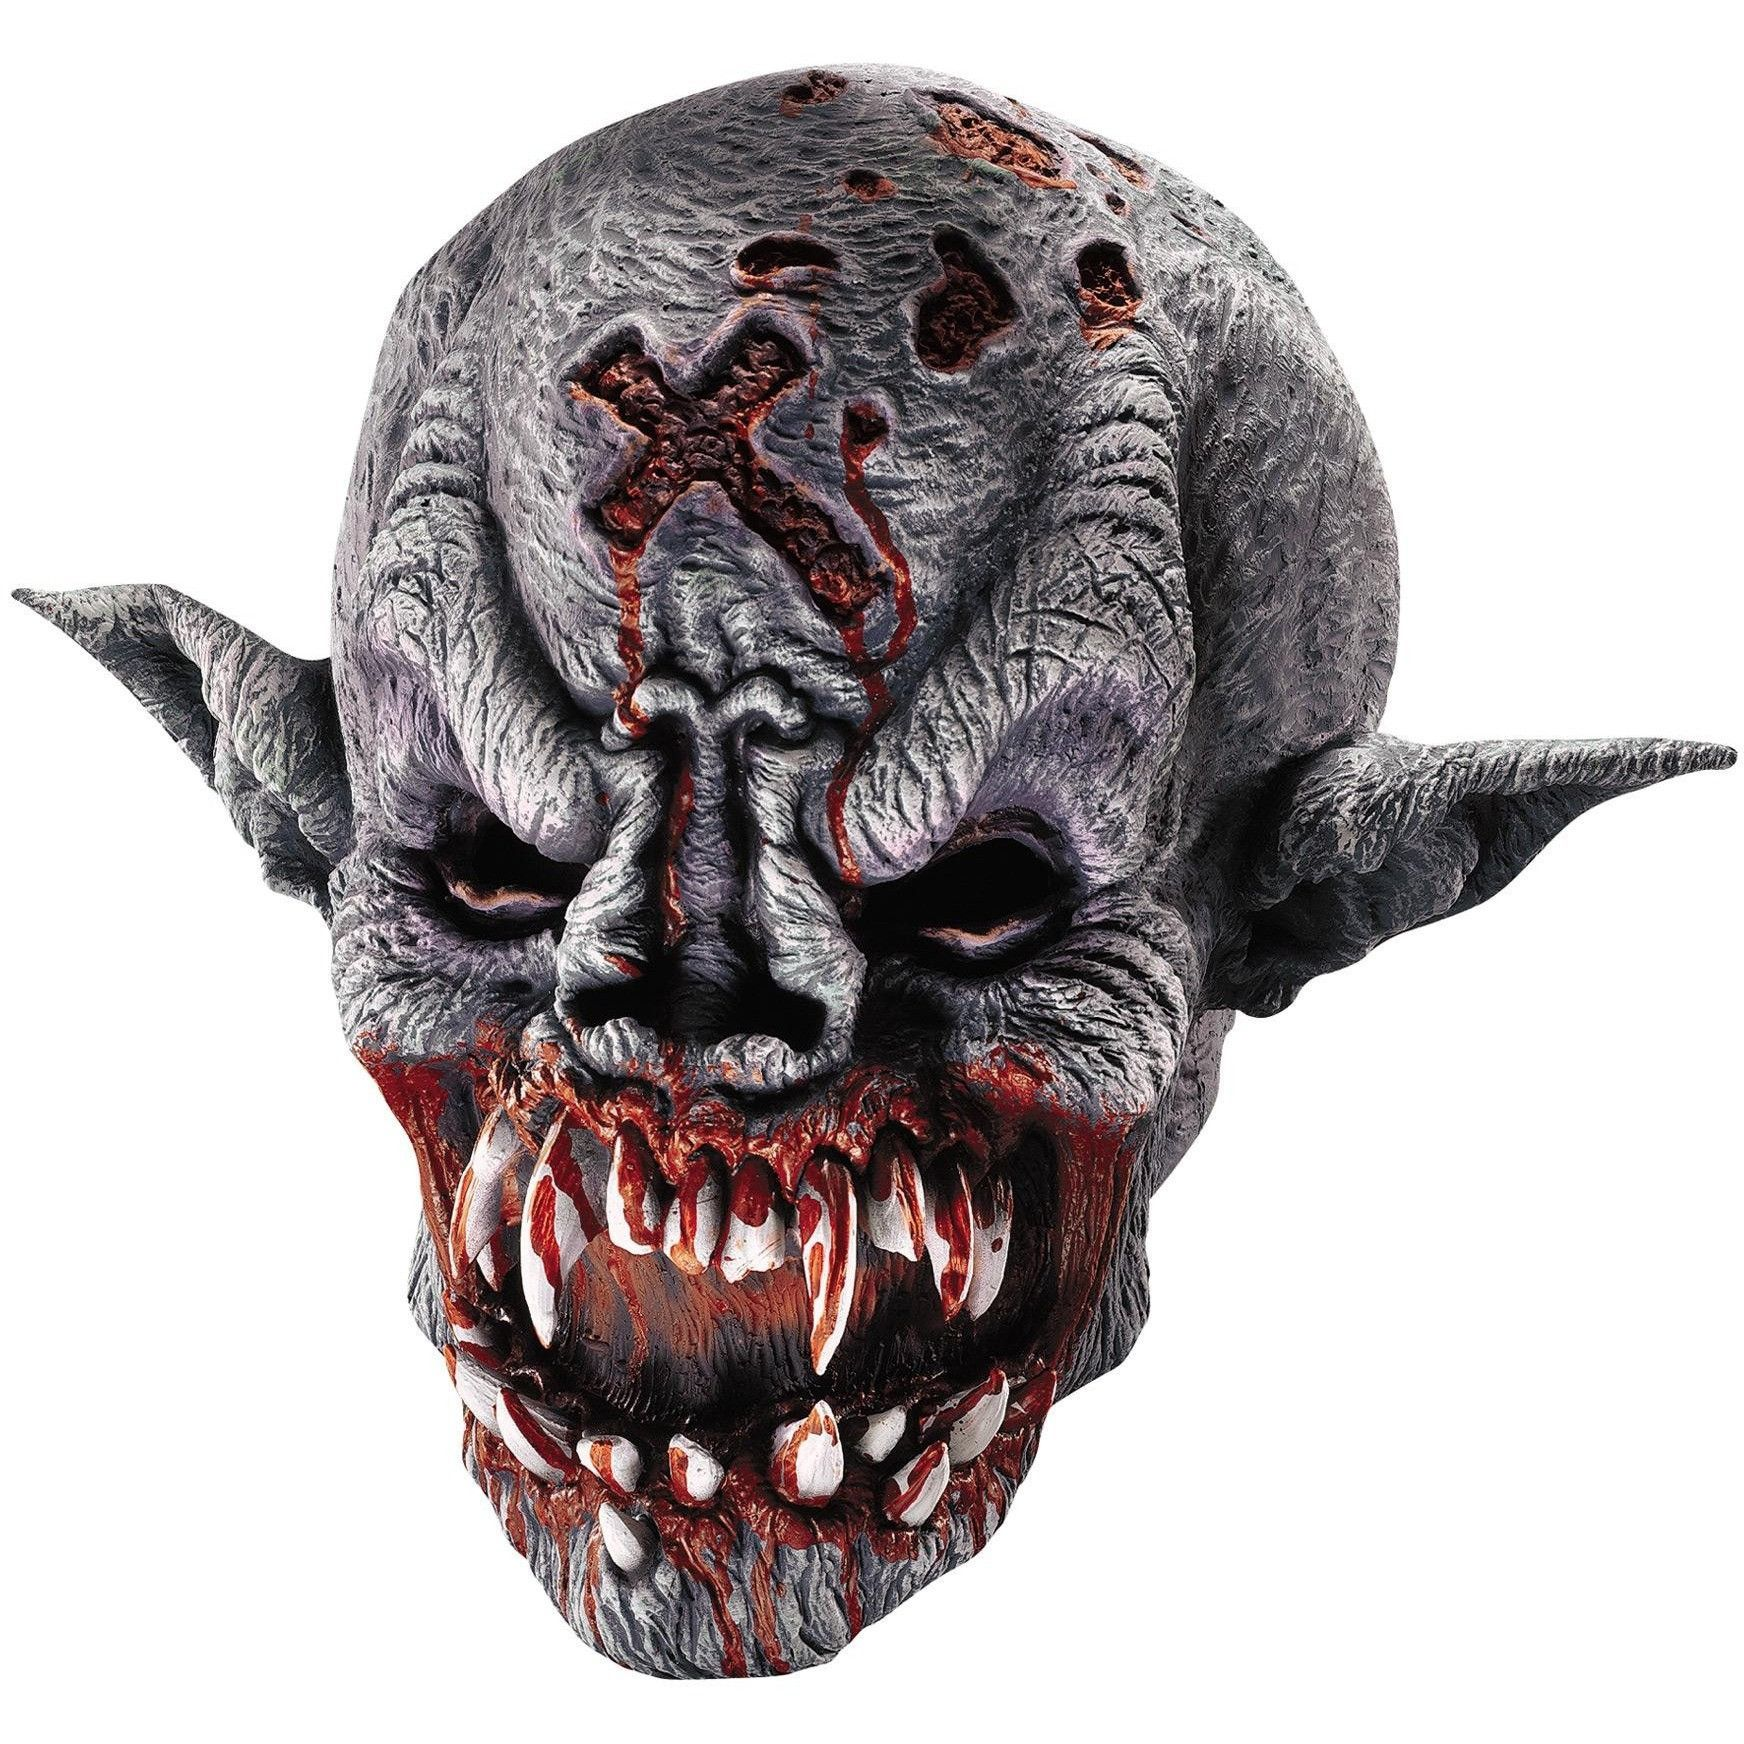 Vampire Demon Mask | Masking and Products